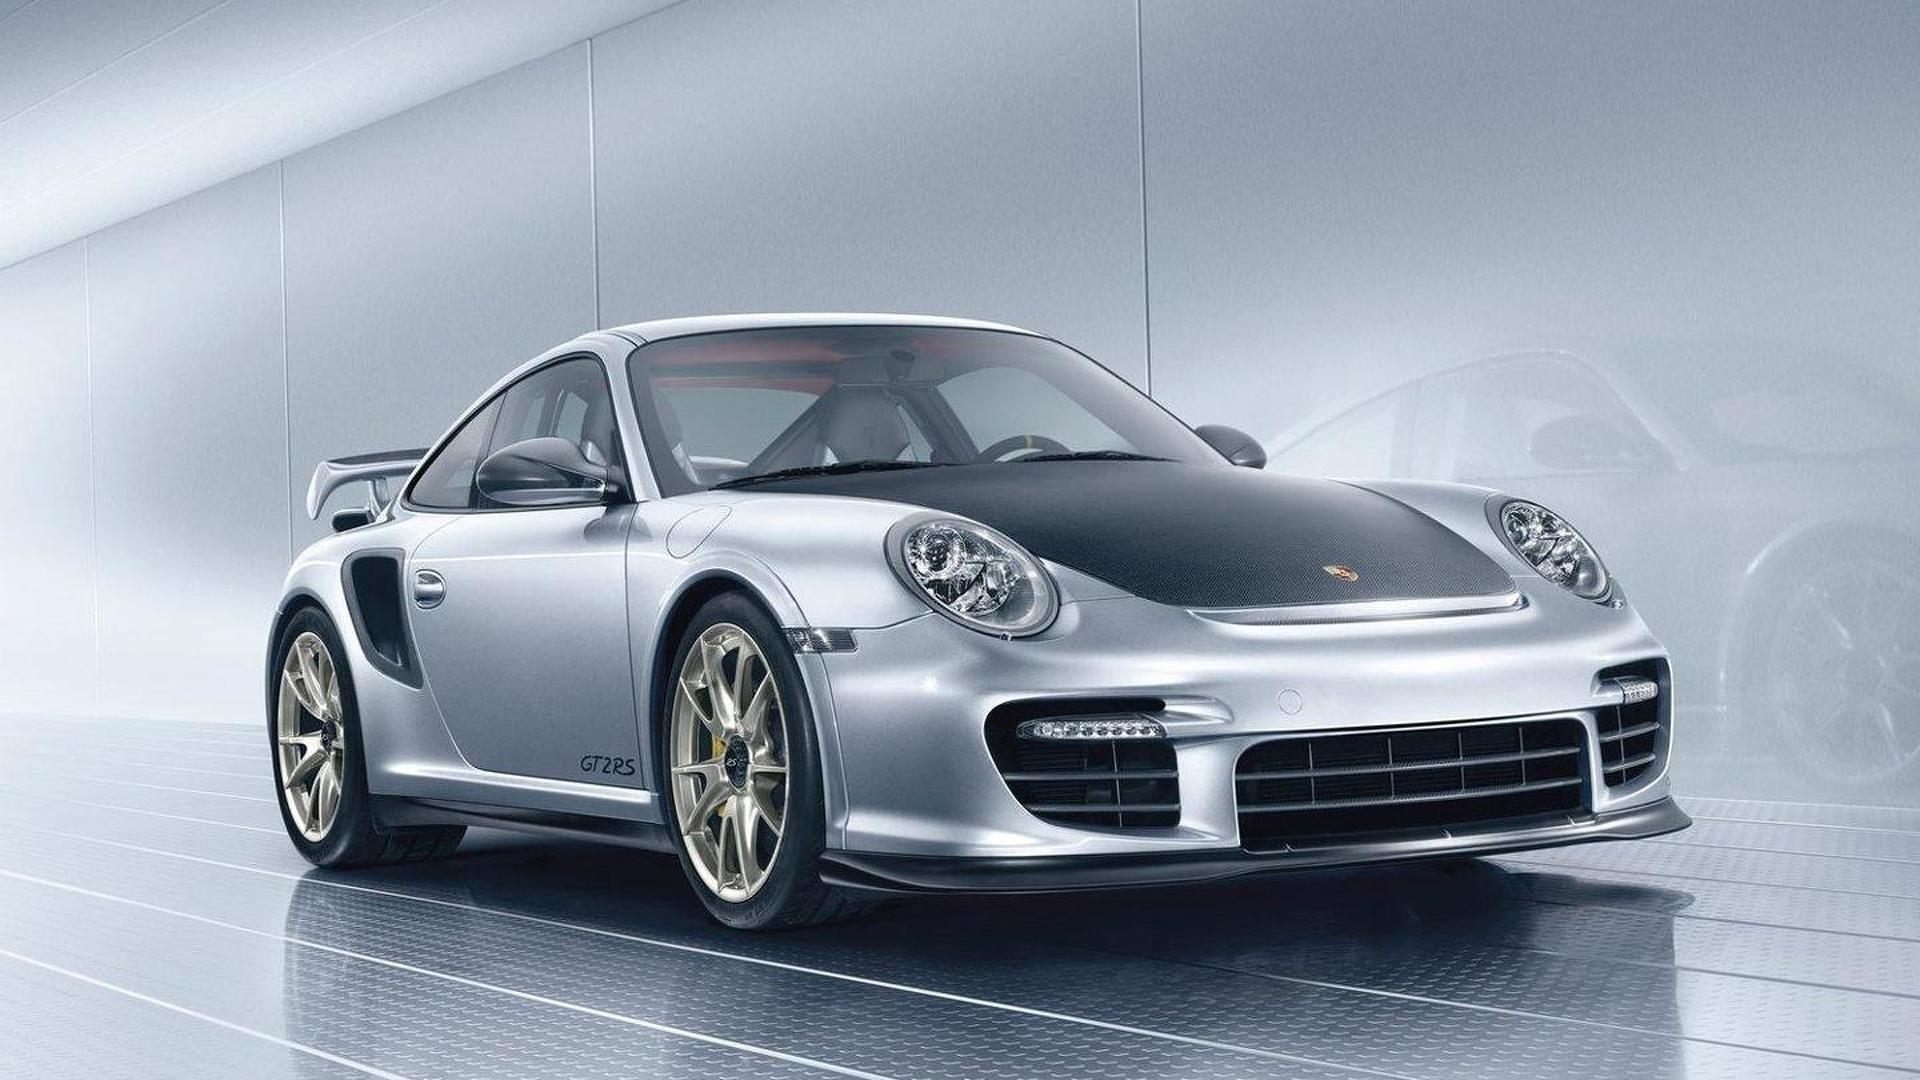 2010-201368-2011-porsche-911-gt2-rs-first-official-photos-12-05-20101 Extraordinary Porsche 911 Gt2 Rs Used Cars Trend